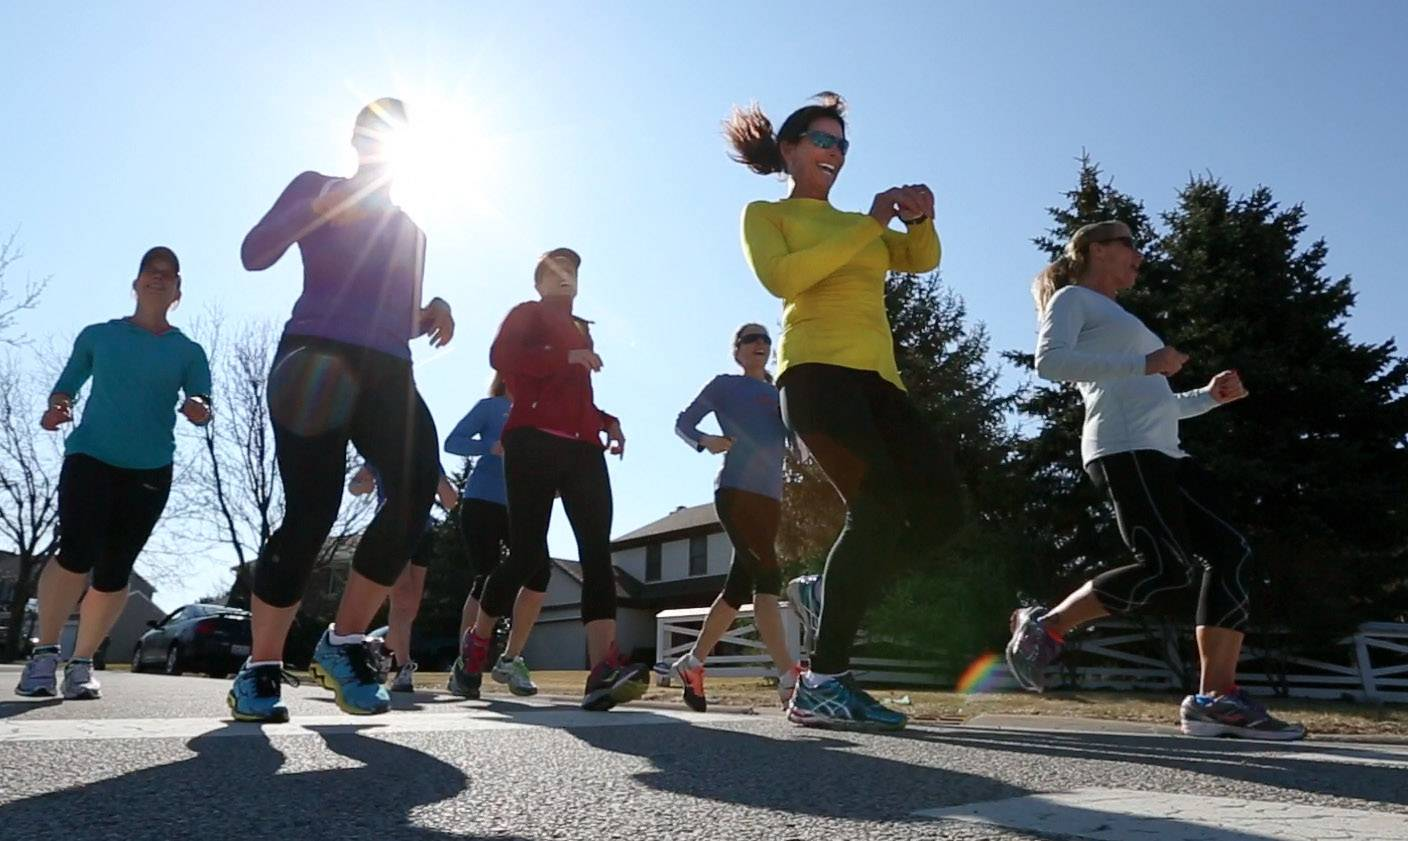 Sue Balthazor of Gurnee, second from right, checks her time after running with the Jenny Spangler Running Club in Gurnee.